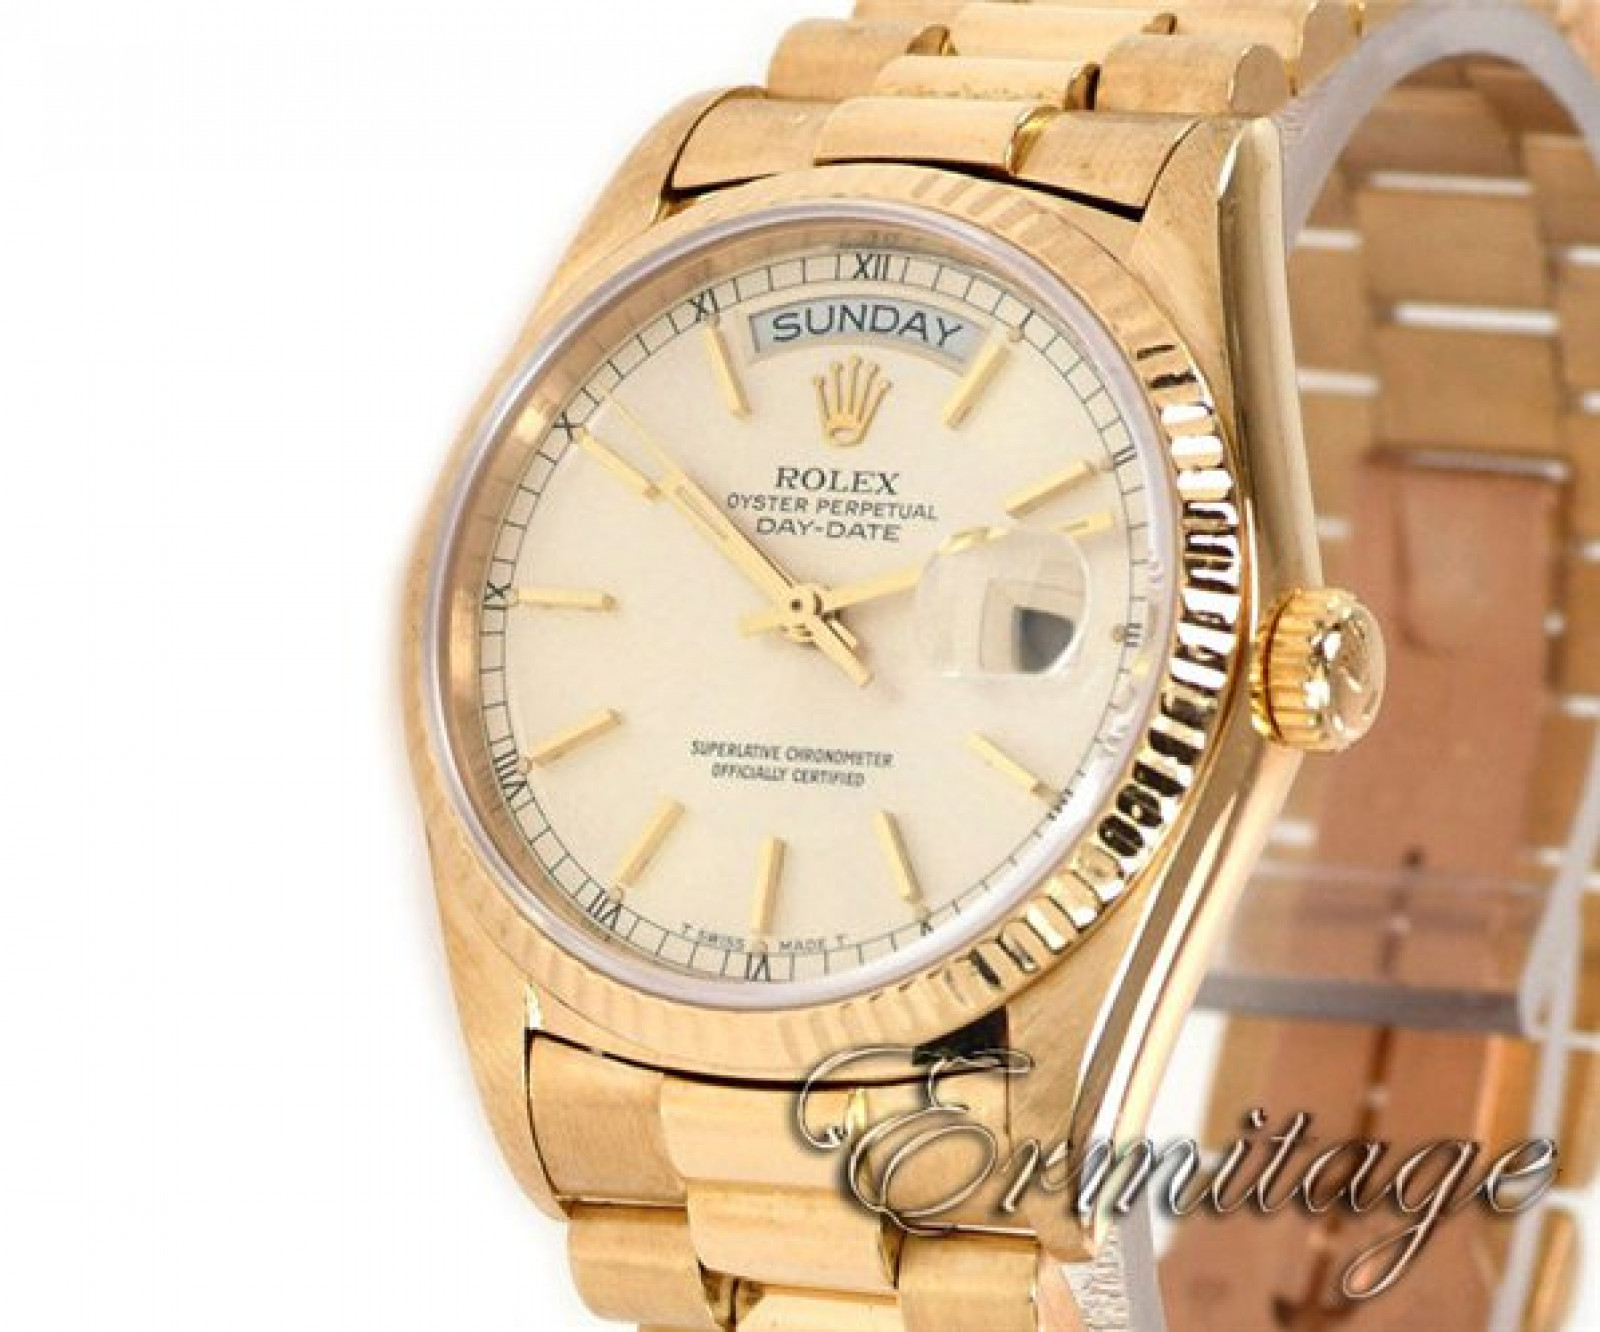 Rolex Day-Date 18038 Gold Silver Dial 1987